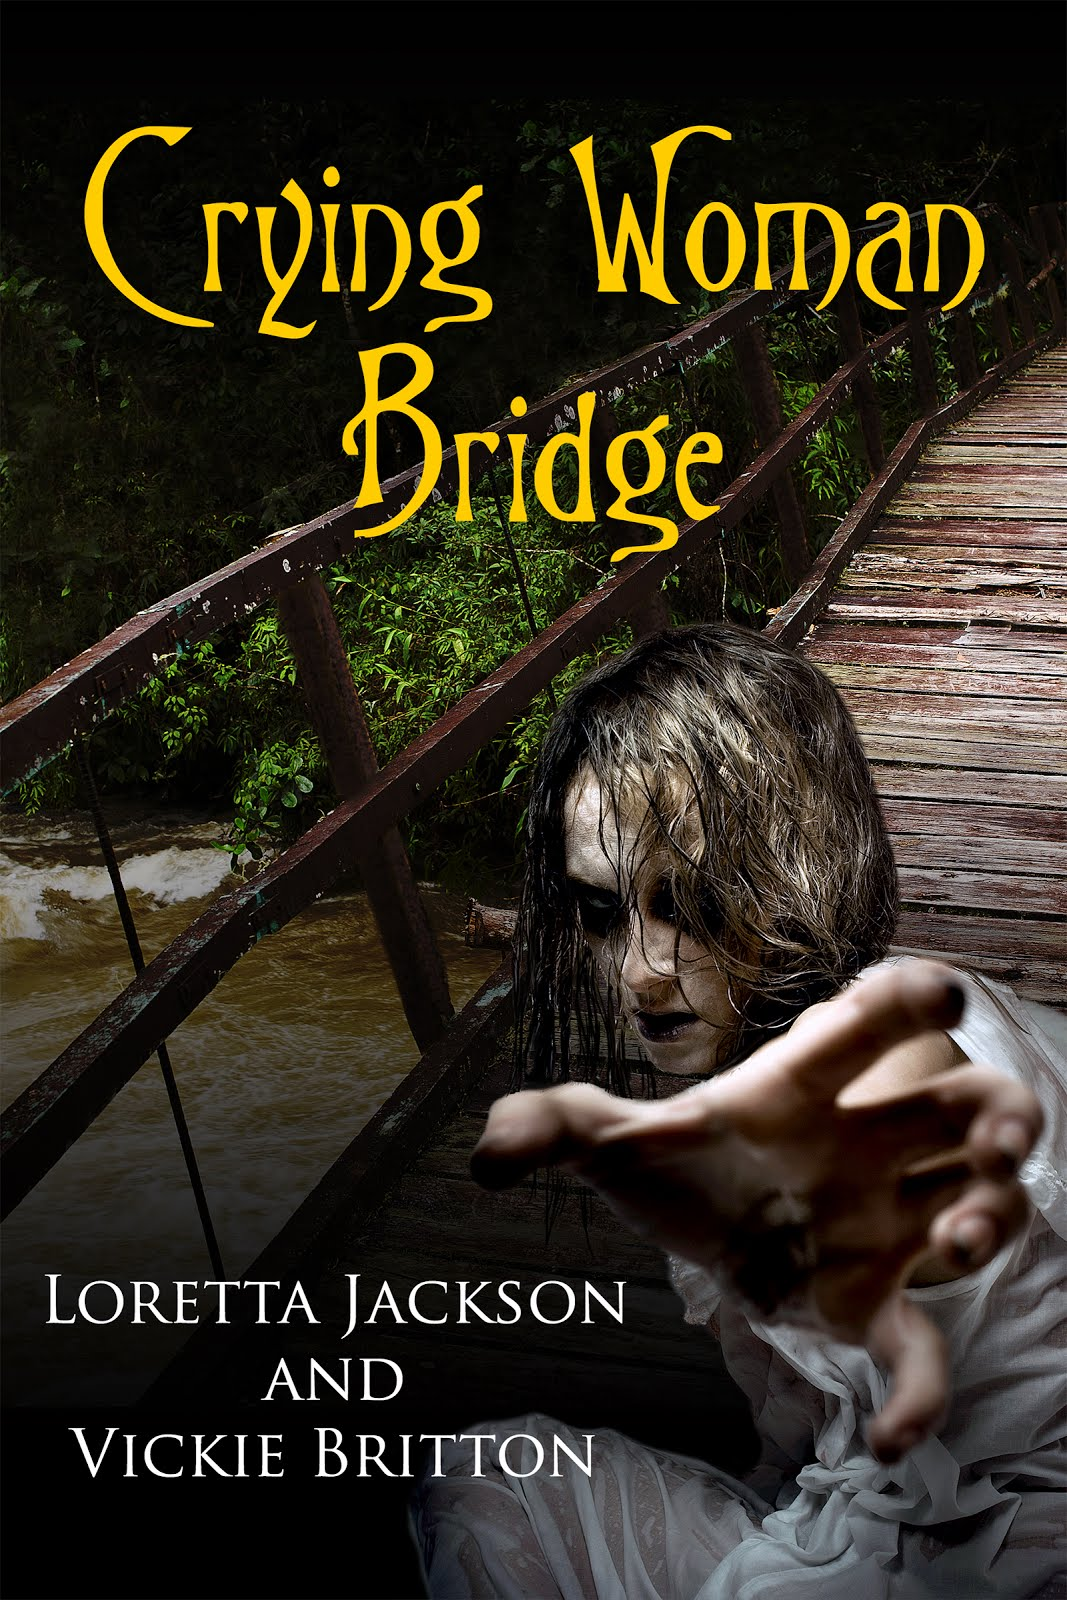 SPECIAL SALE Read CRYING WOMAN BRIDGE for 99c through June 15!